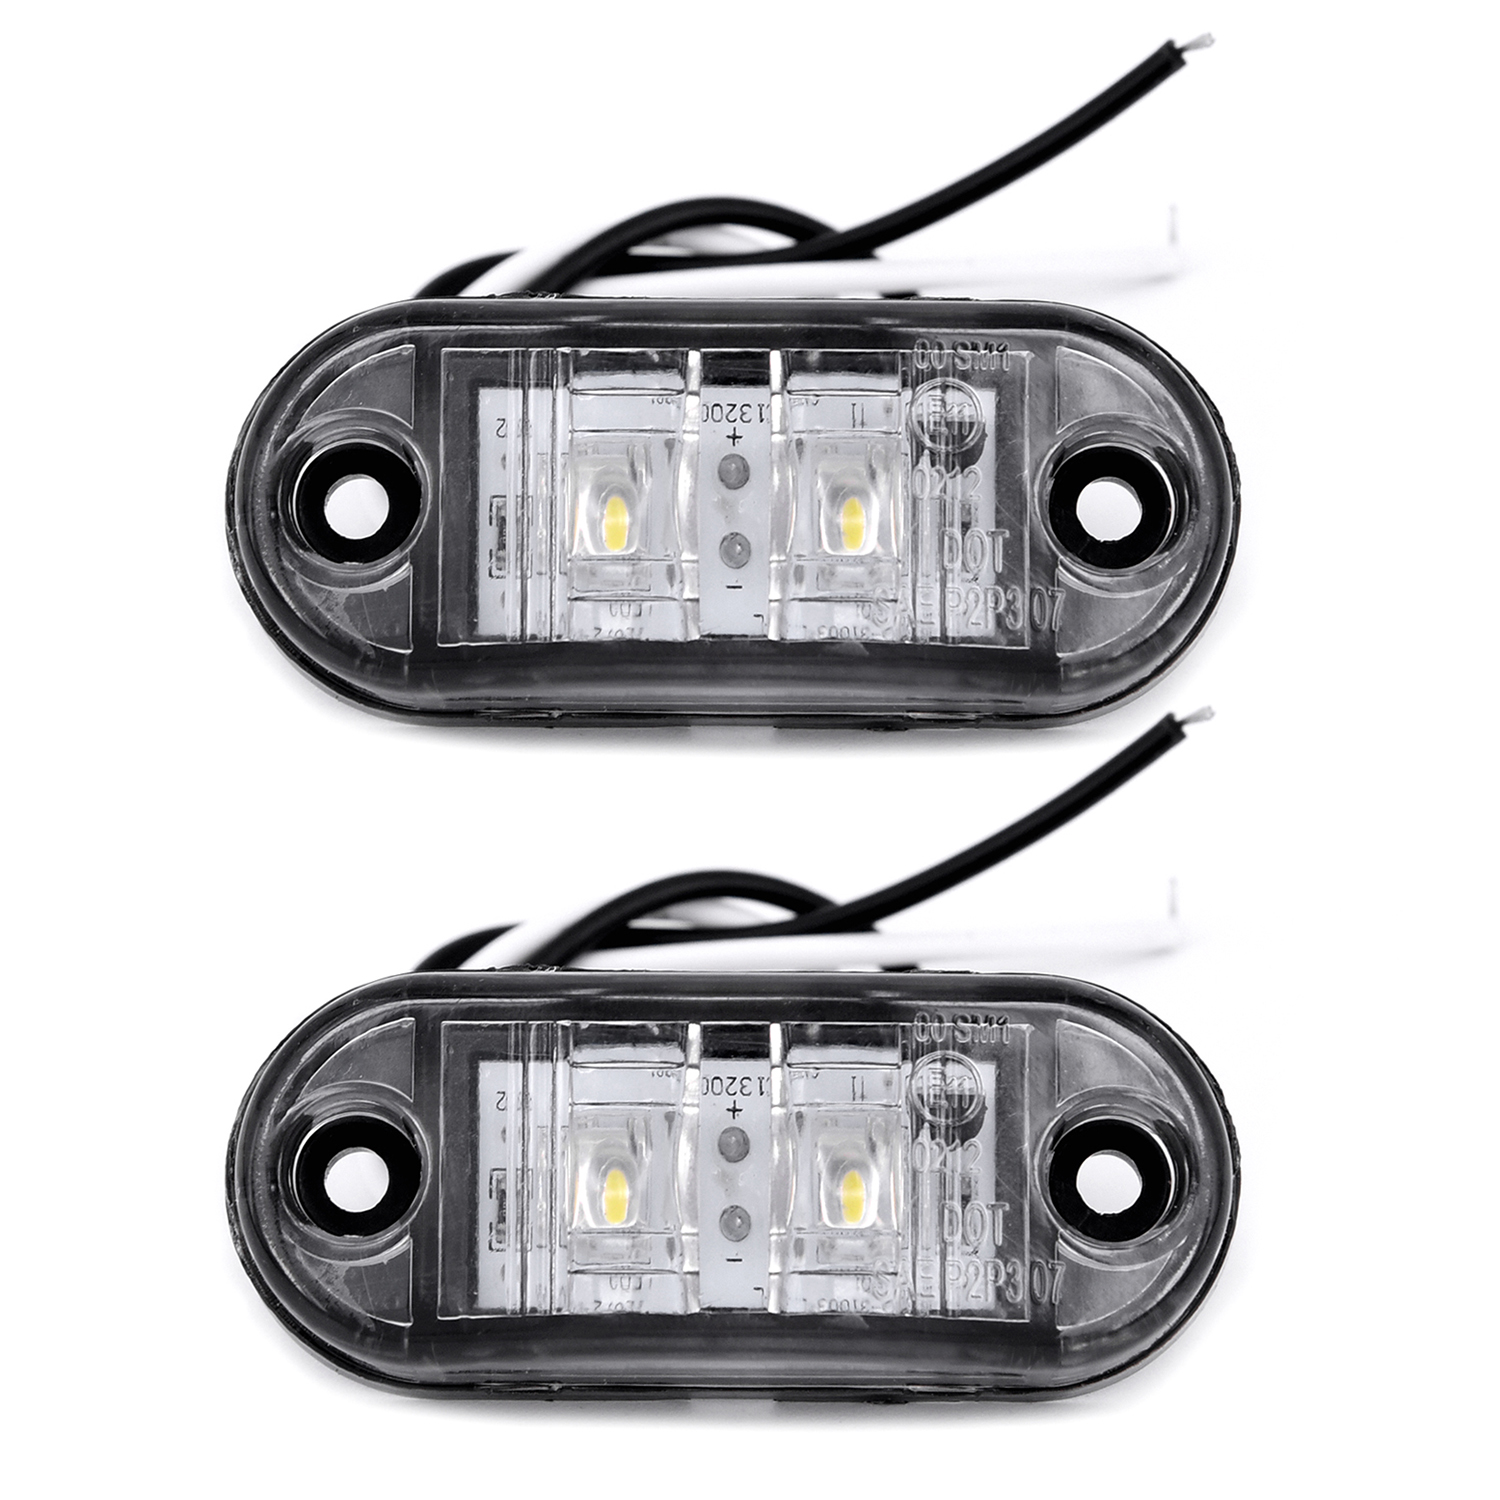 Image 5 - 2pcs White 12V LED Car Side Marker Tail Light 24V Trailer Truck Lamp High Quality 66*28*18mm Side Marker Lights Accessories-in Truck Light System from Automobiles & Motorcycles